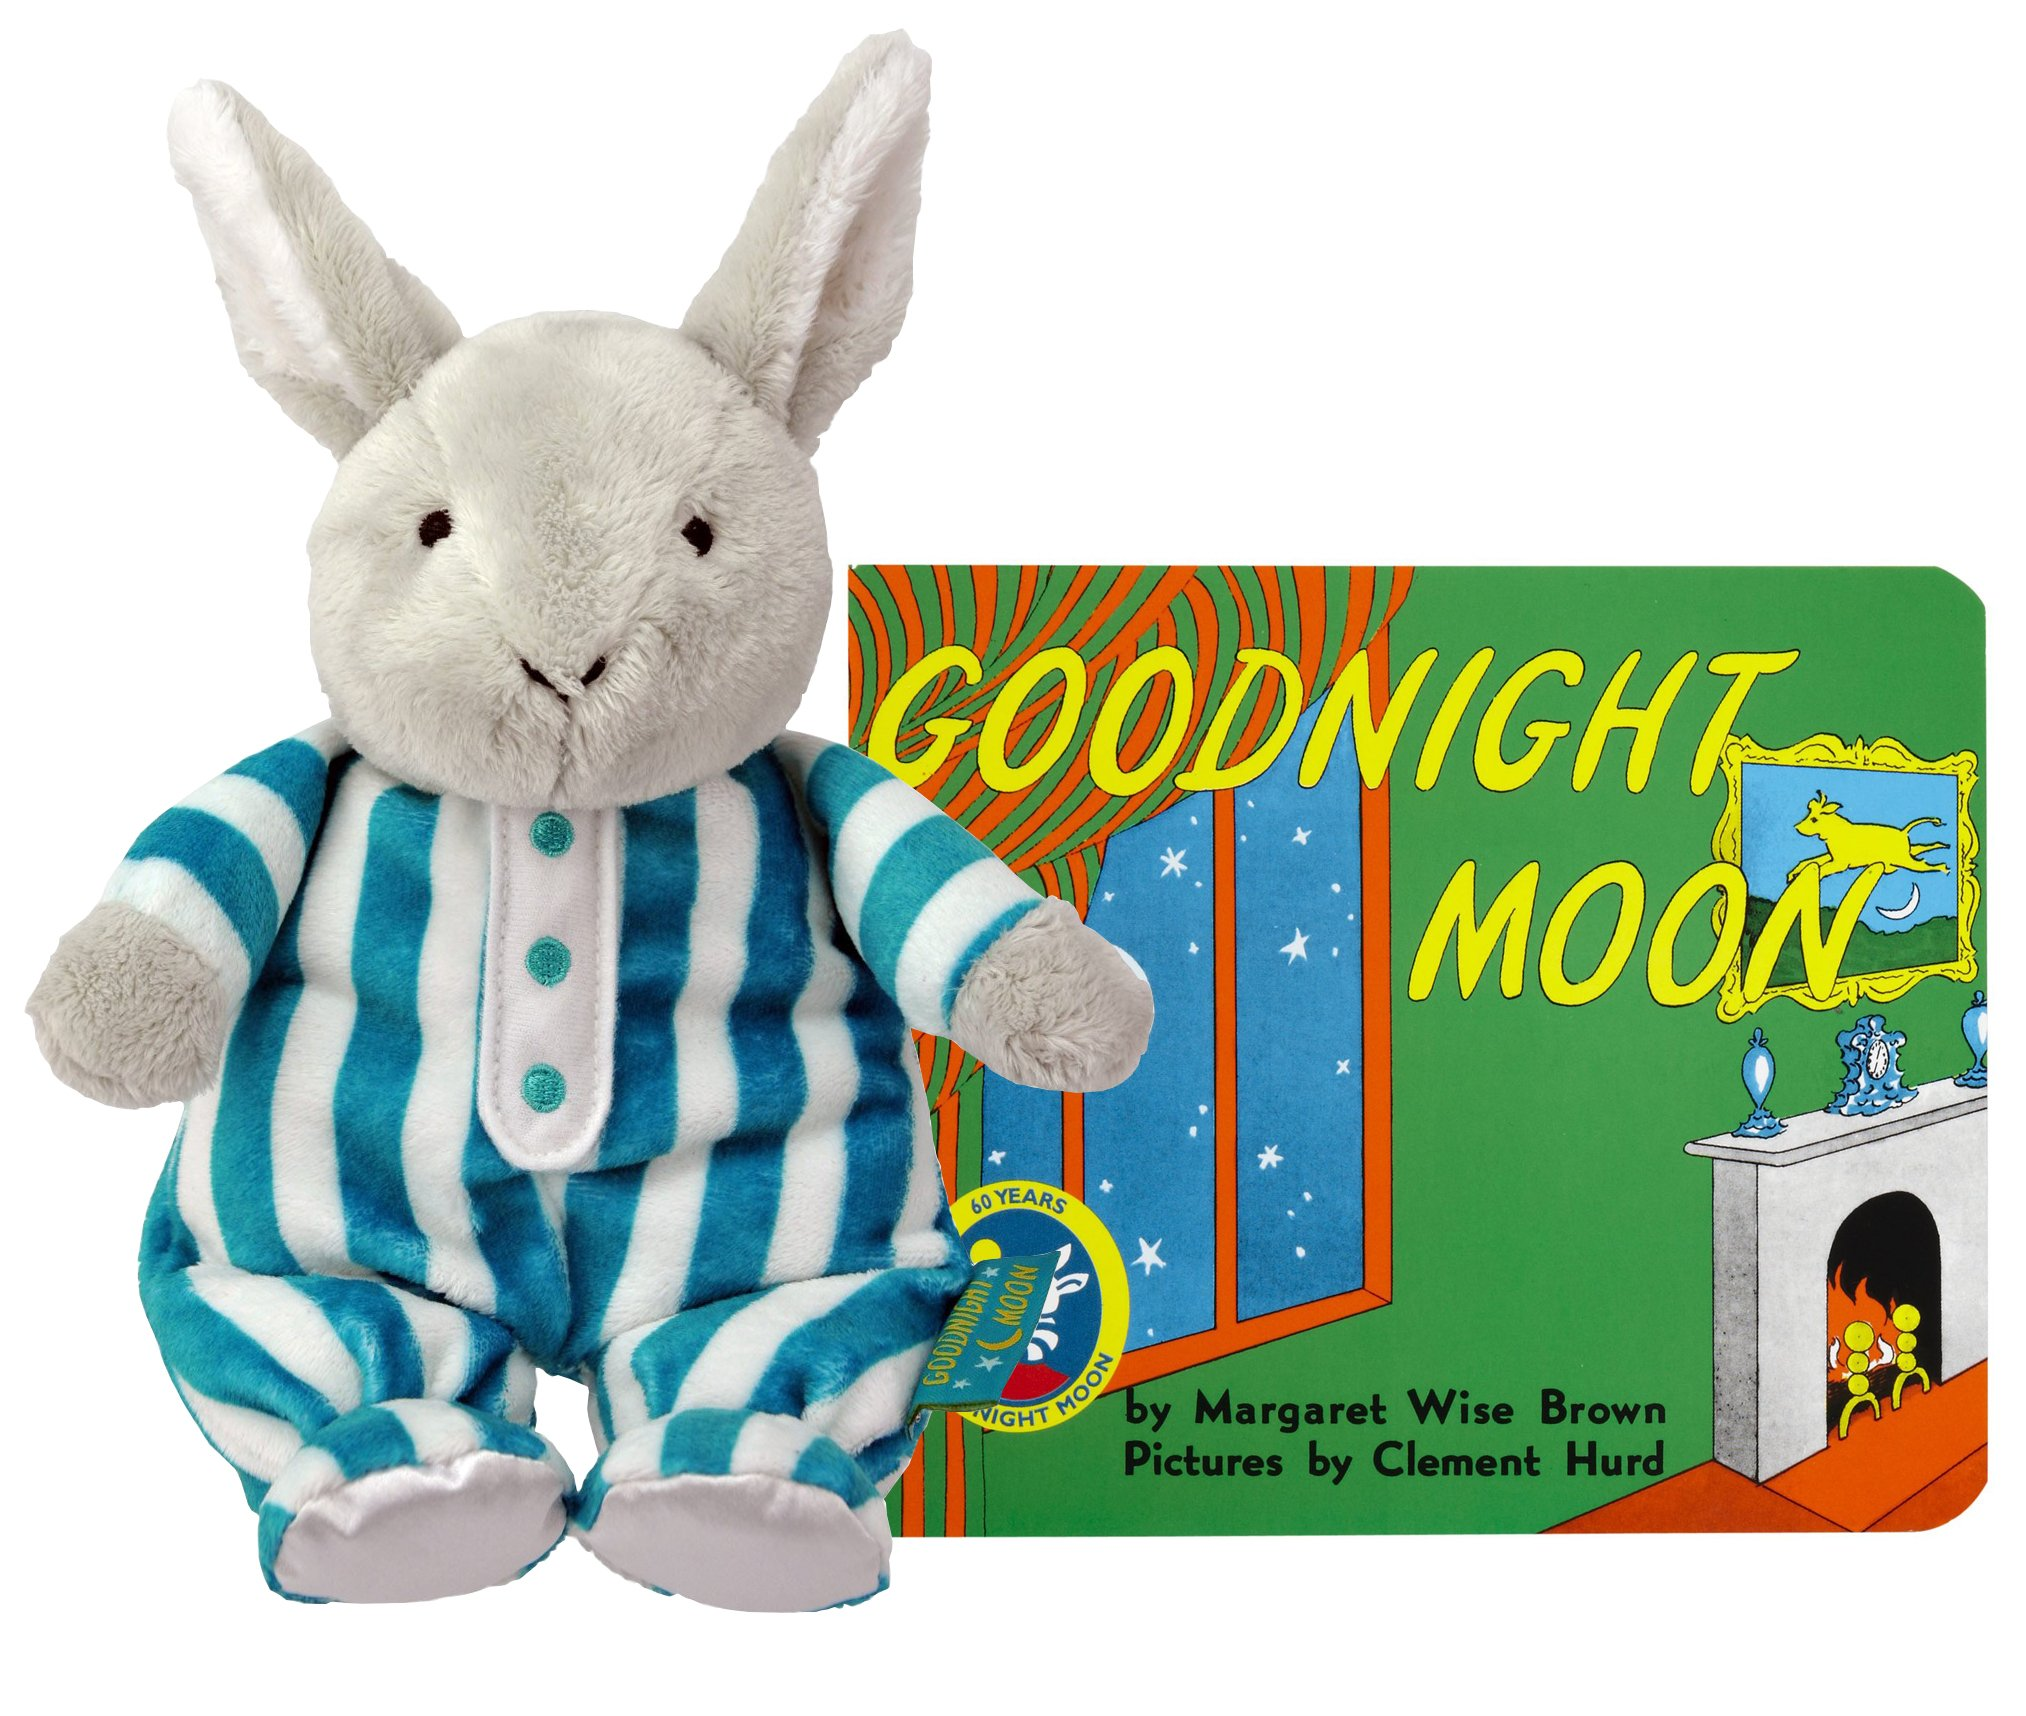 Good Night Moon Cuddle Bunny with Board Book